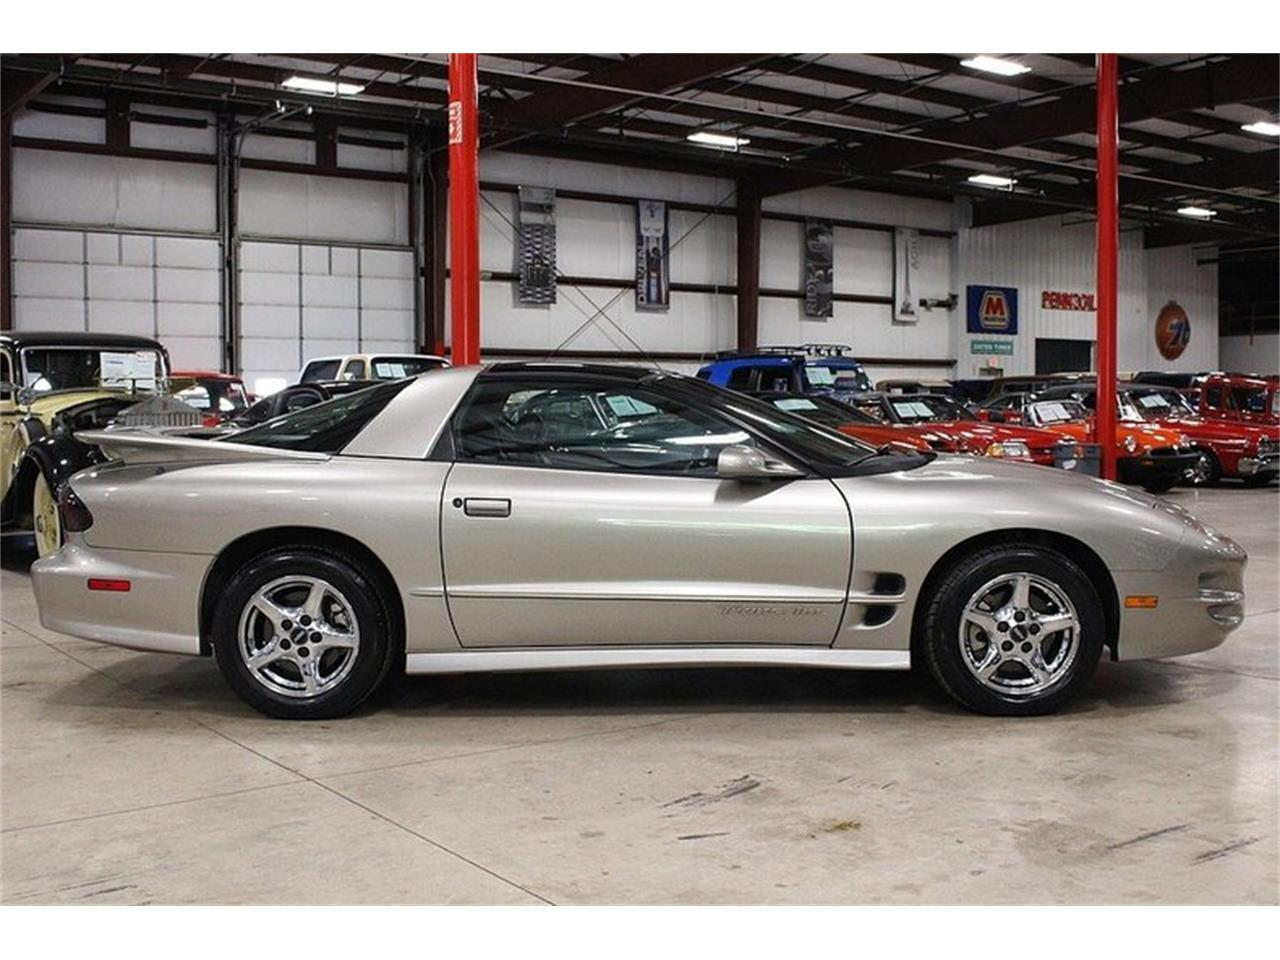 Large Picture of 2000 Pontiac Firebird located in Michigan - $9,900.00 Offered by GR Auto Gallery - LL2G